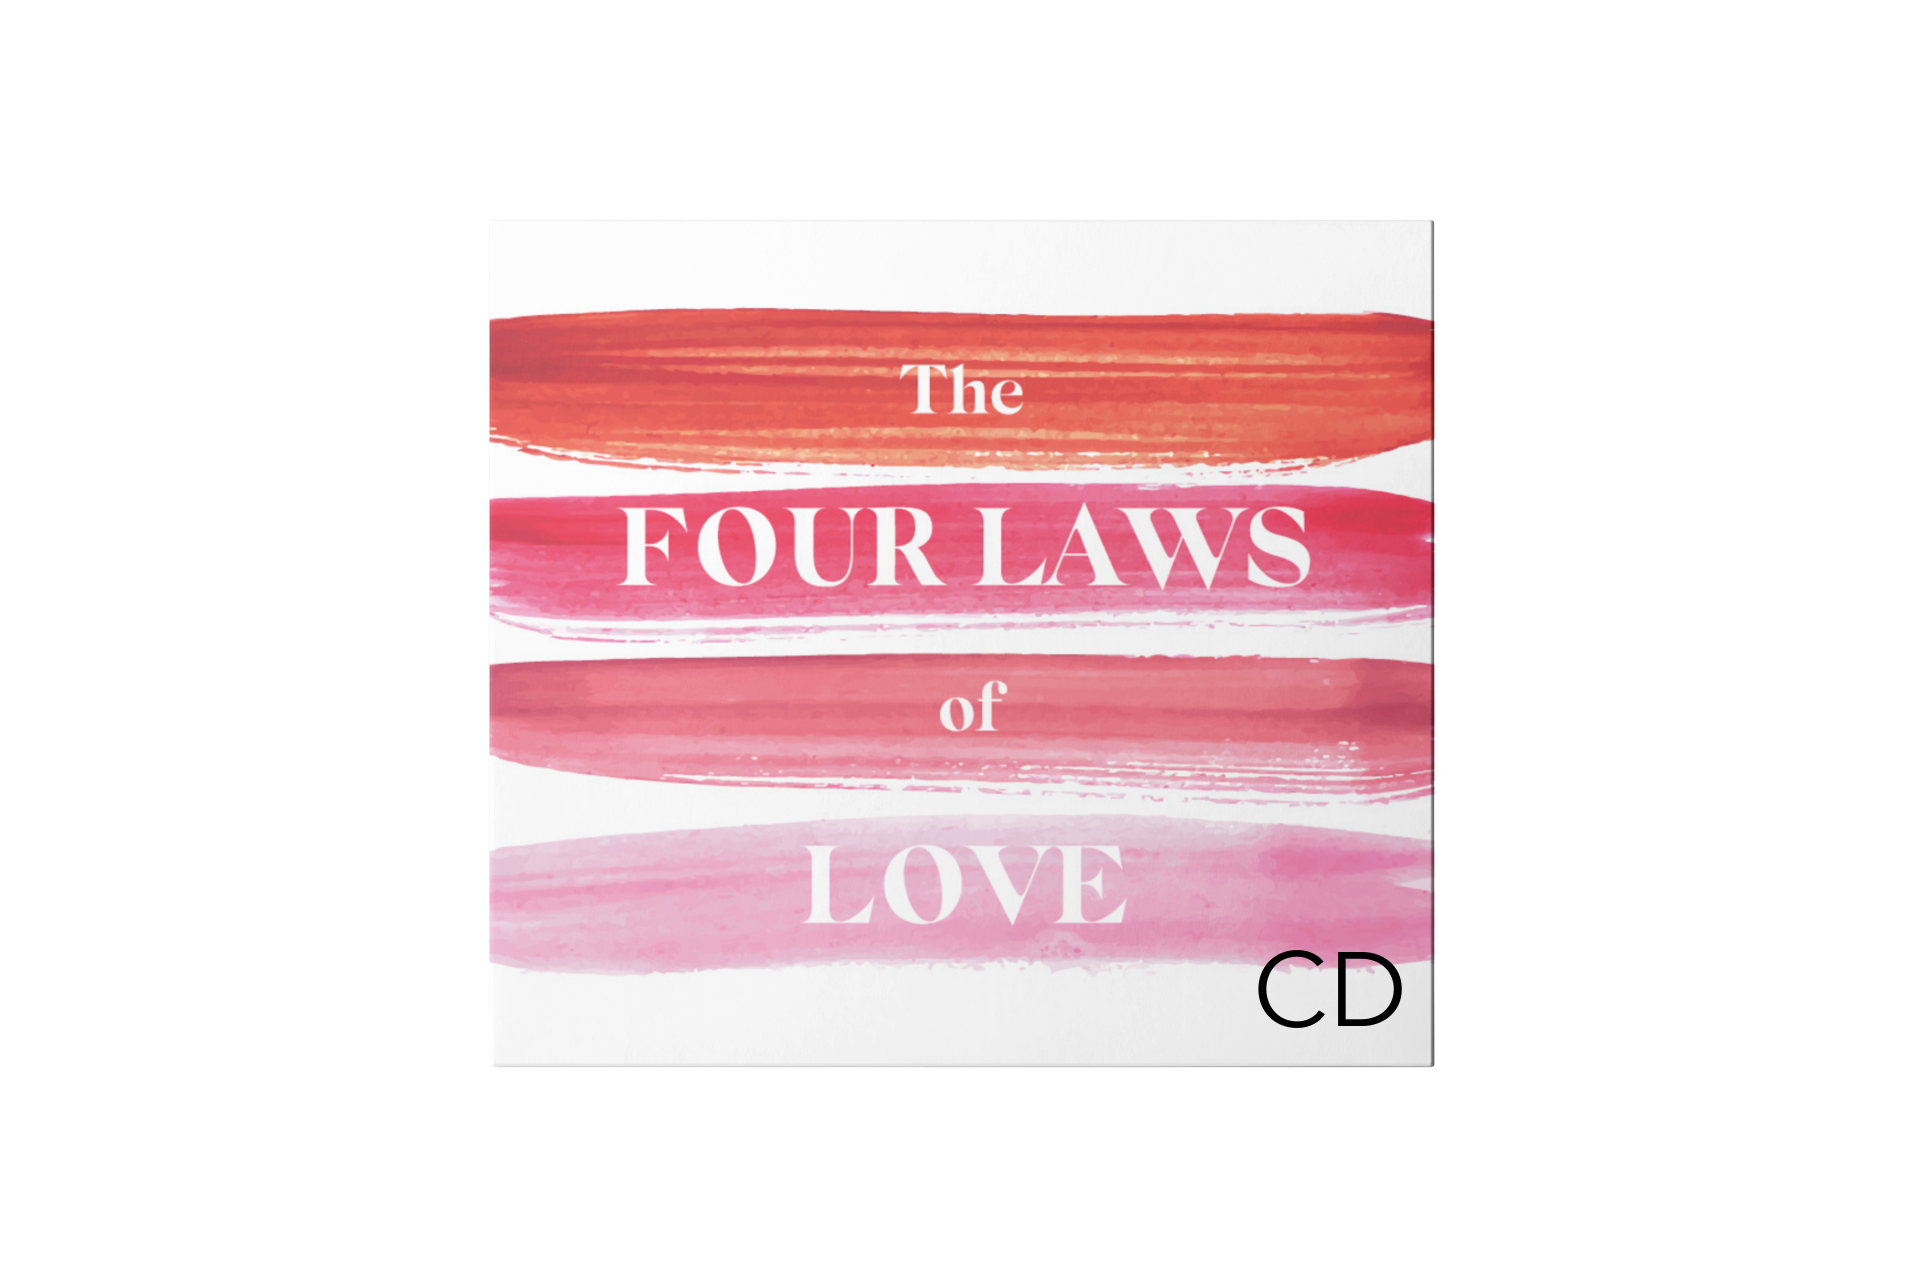 Four Laws of Love CD